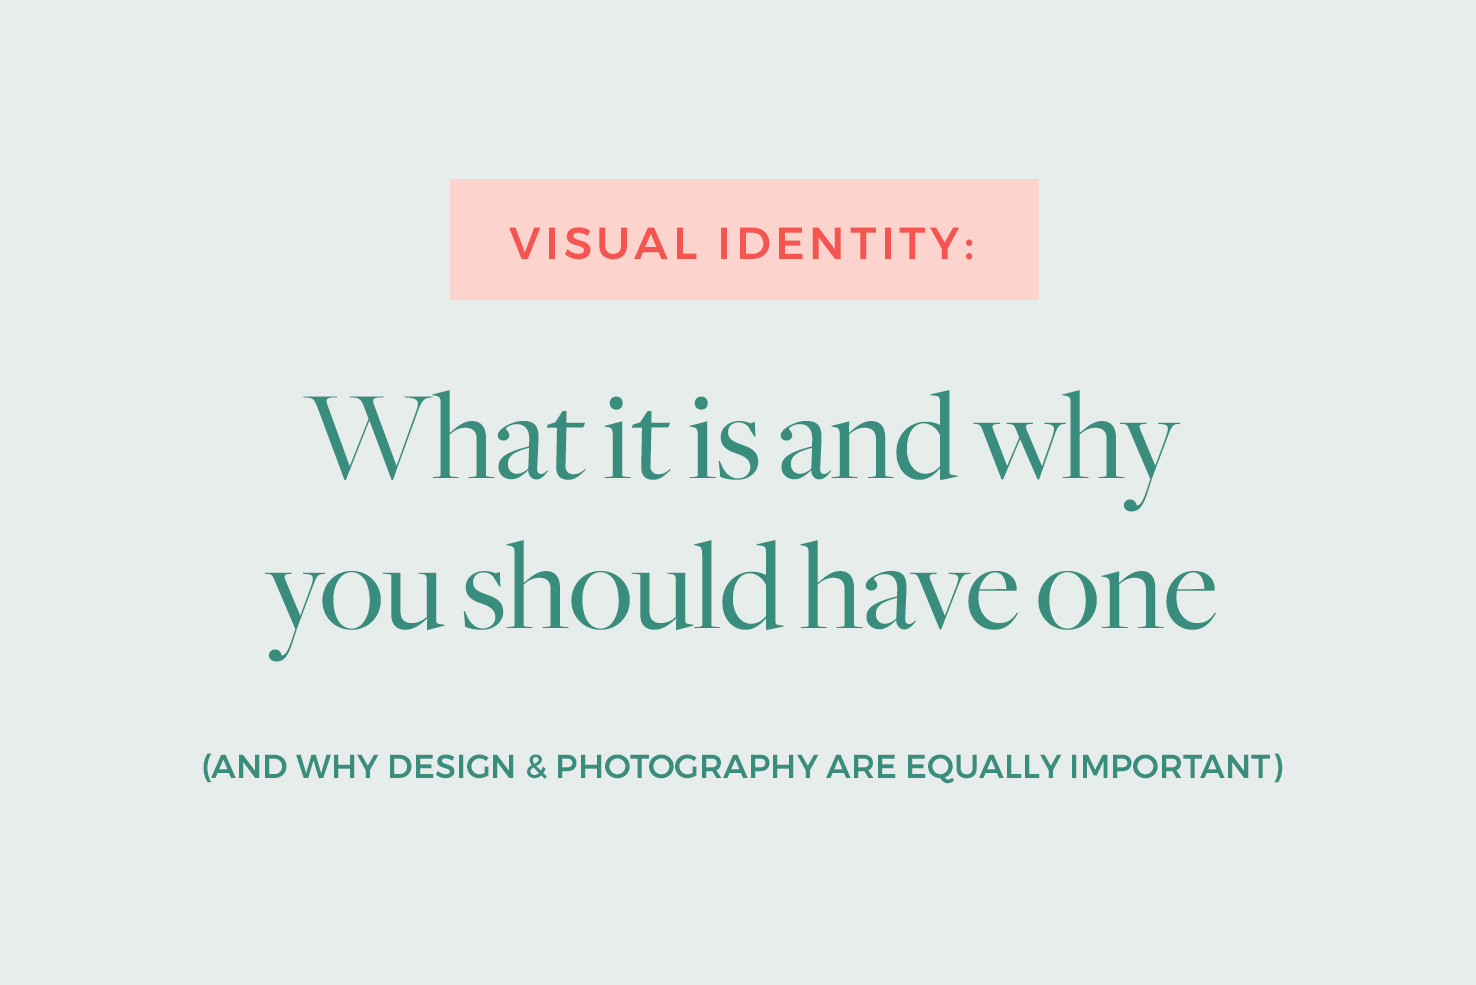 visual-identity-why-you-should-have-one2.jpg